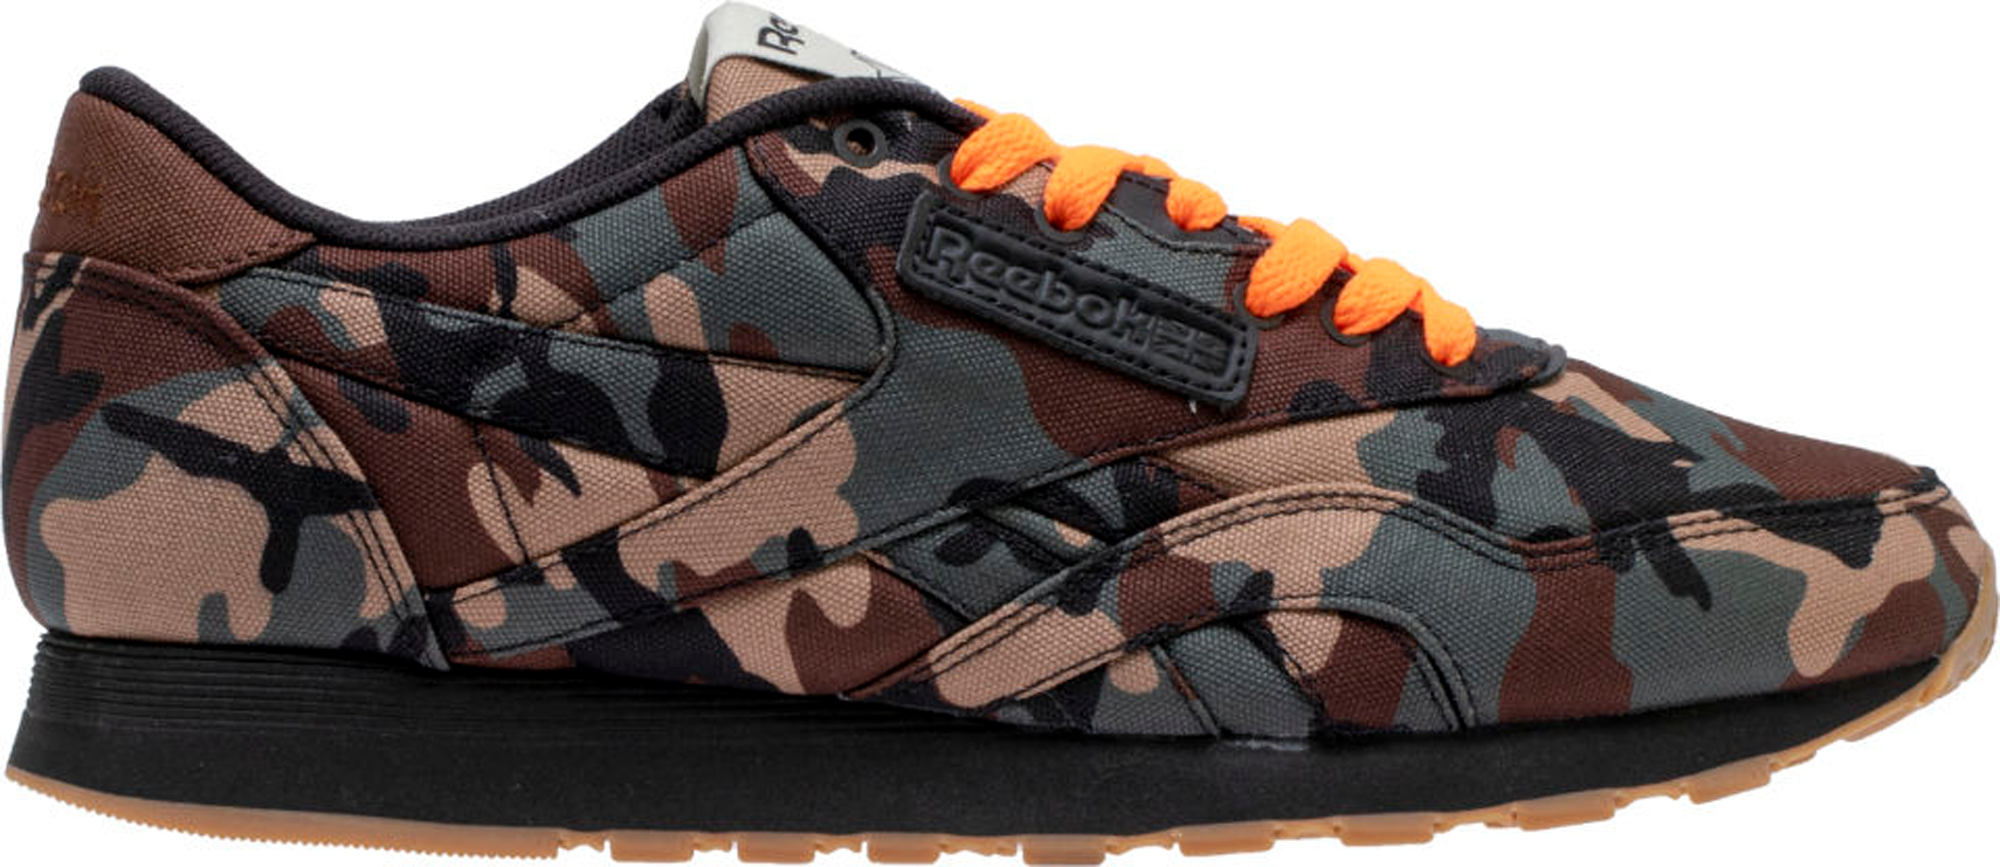 Reebok Classic Canvas Shoe Palace x G.I. Joe